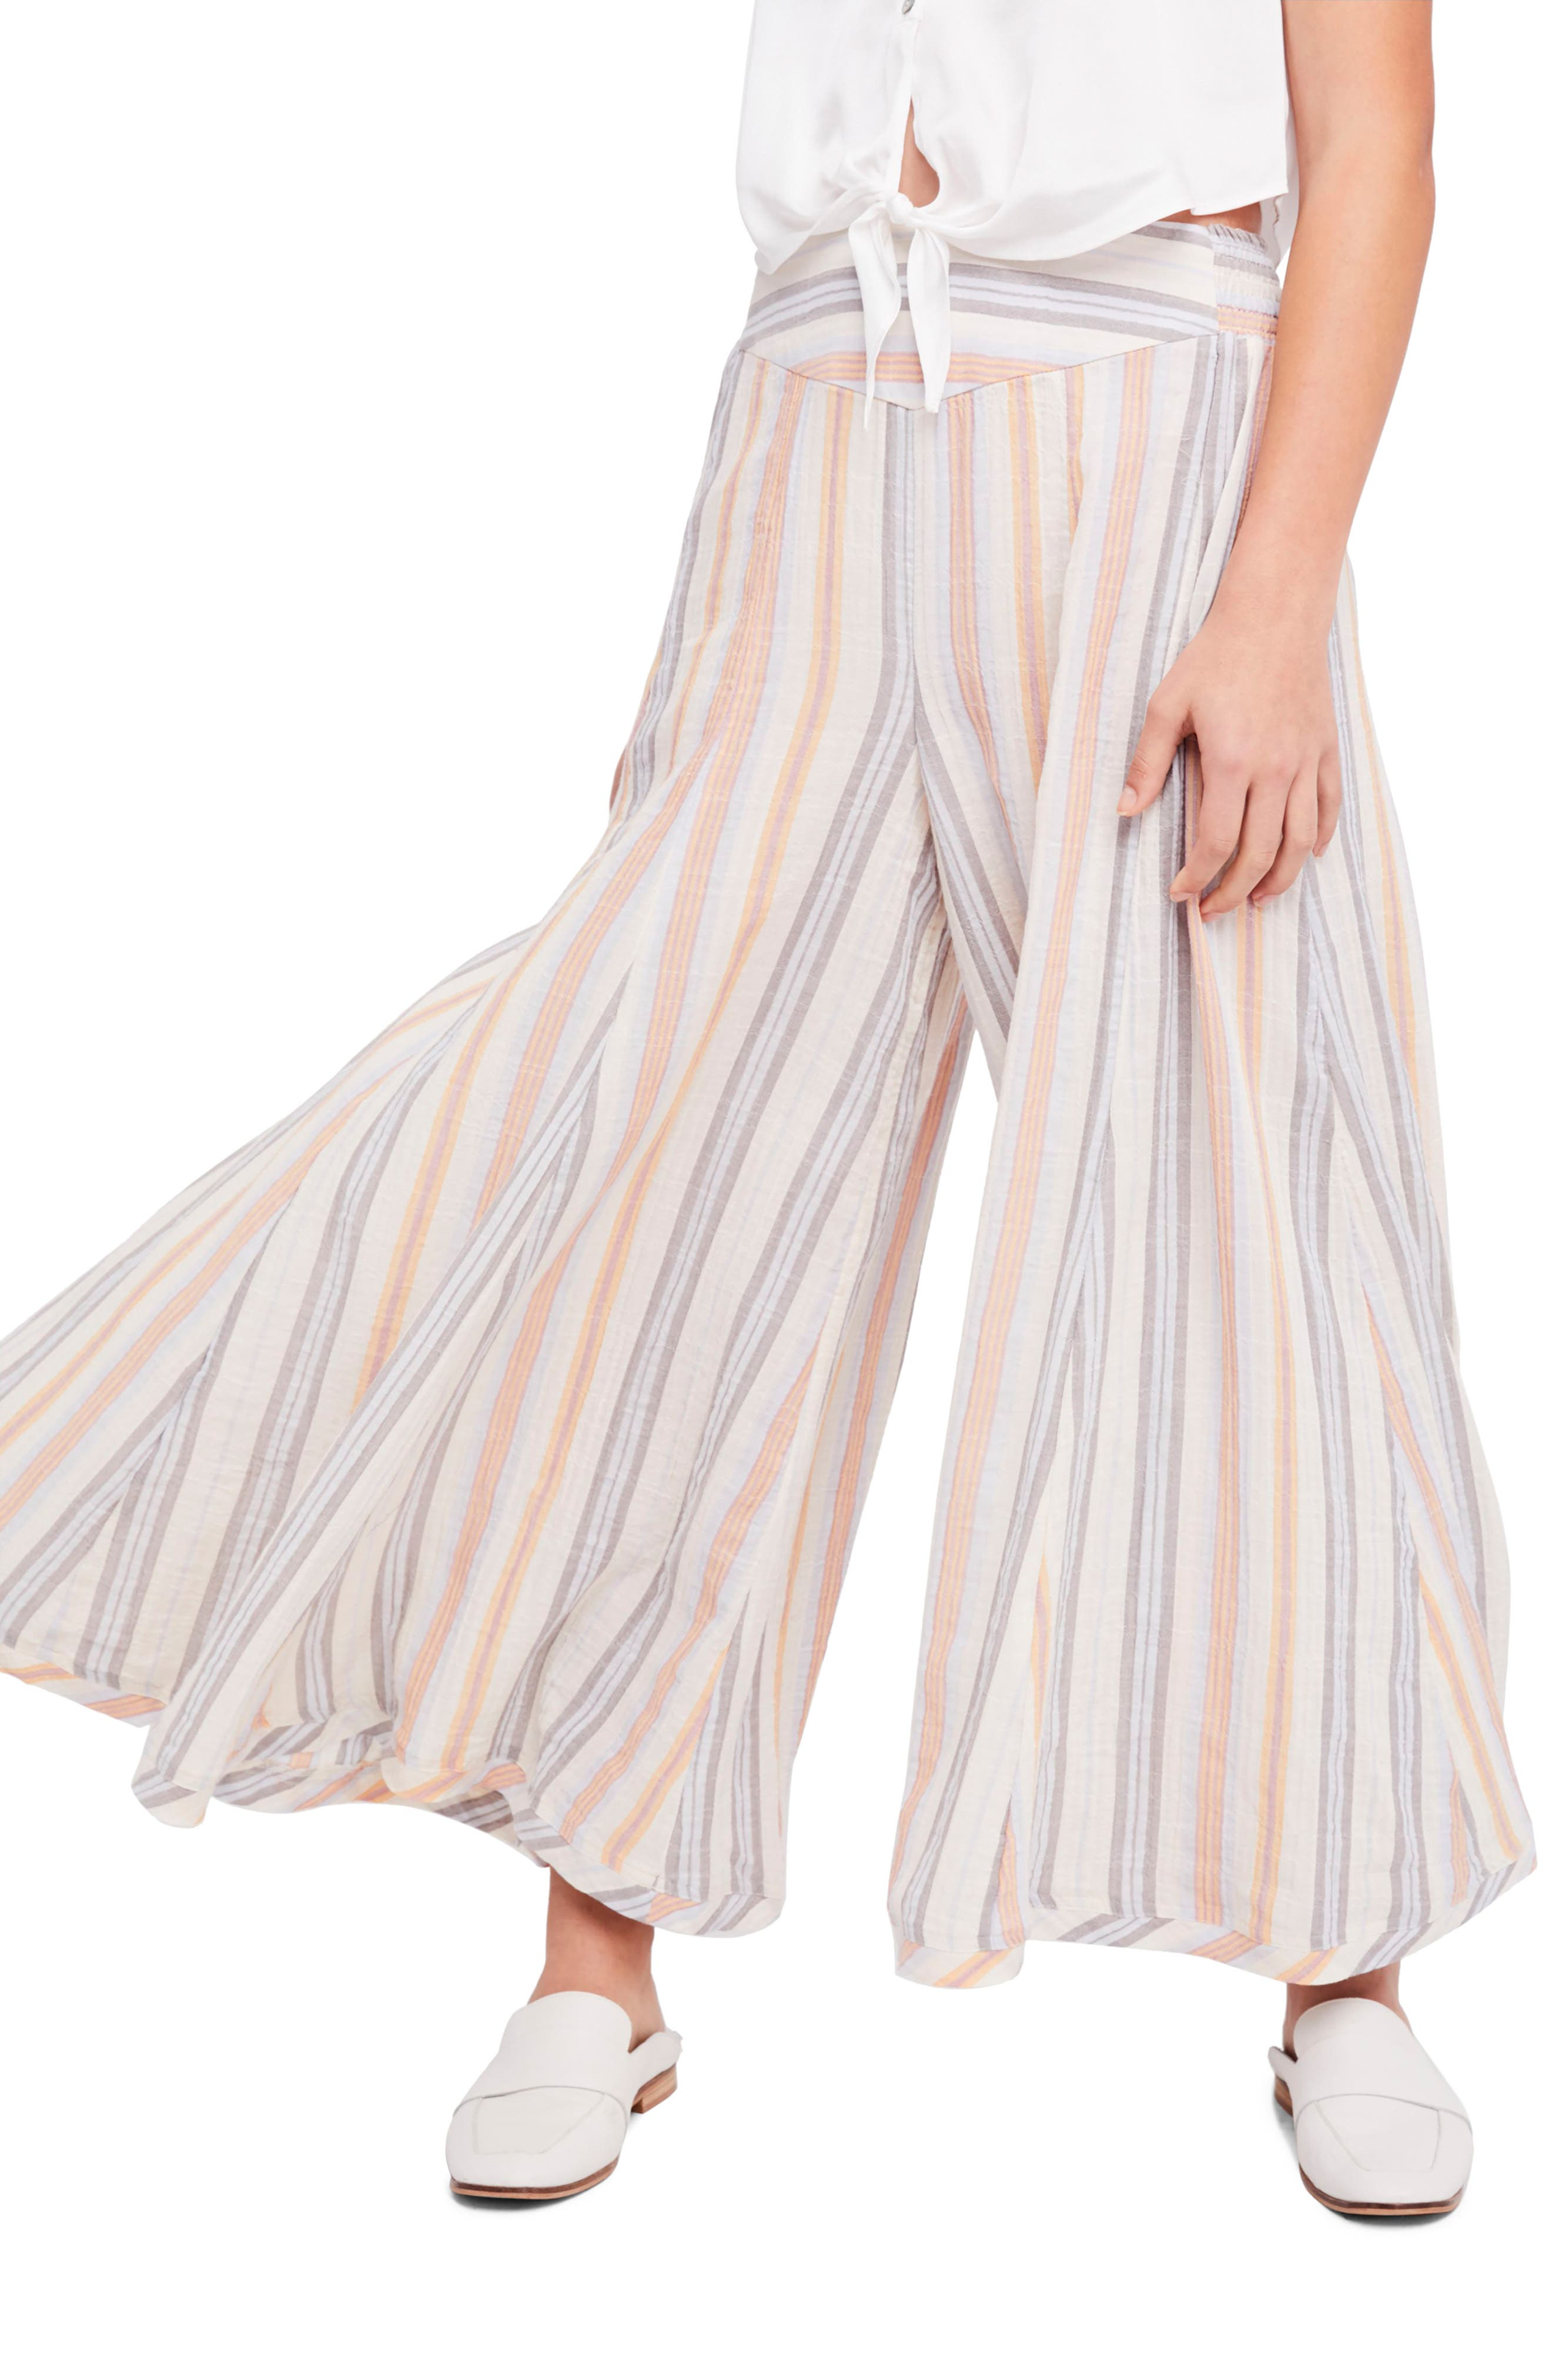 Blaire Culottes,                         Main,                         color, Ivory